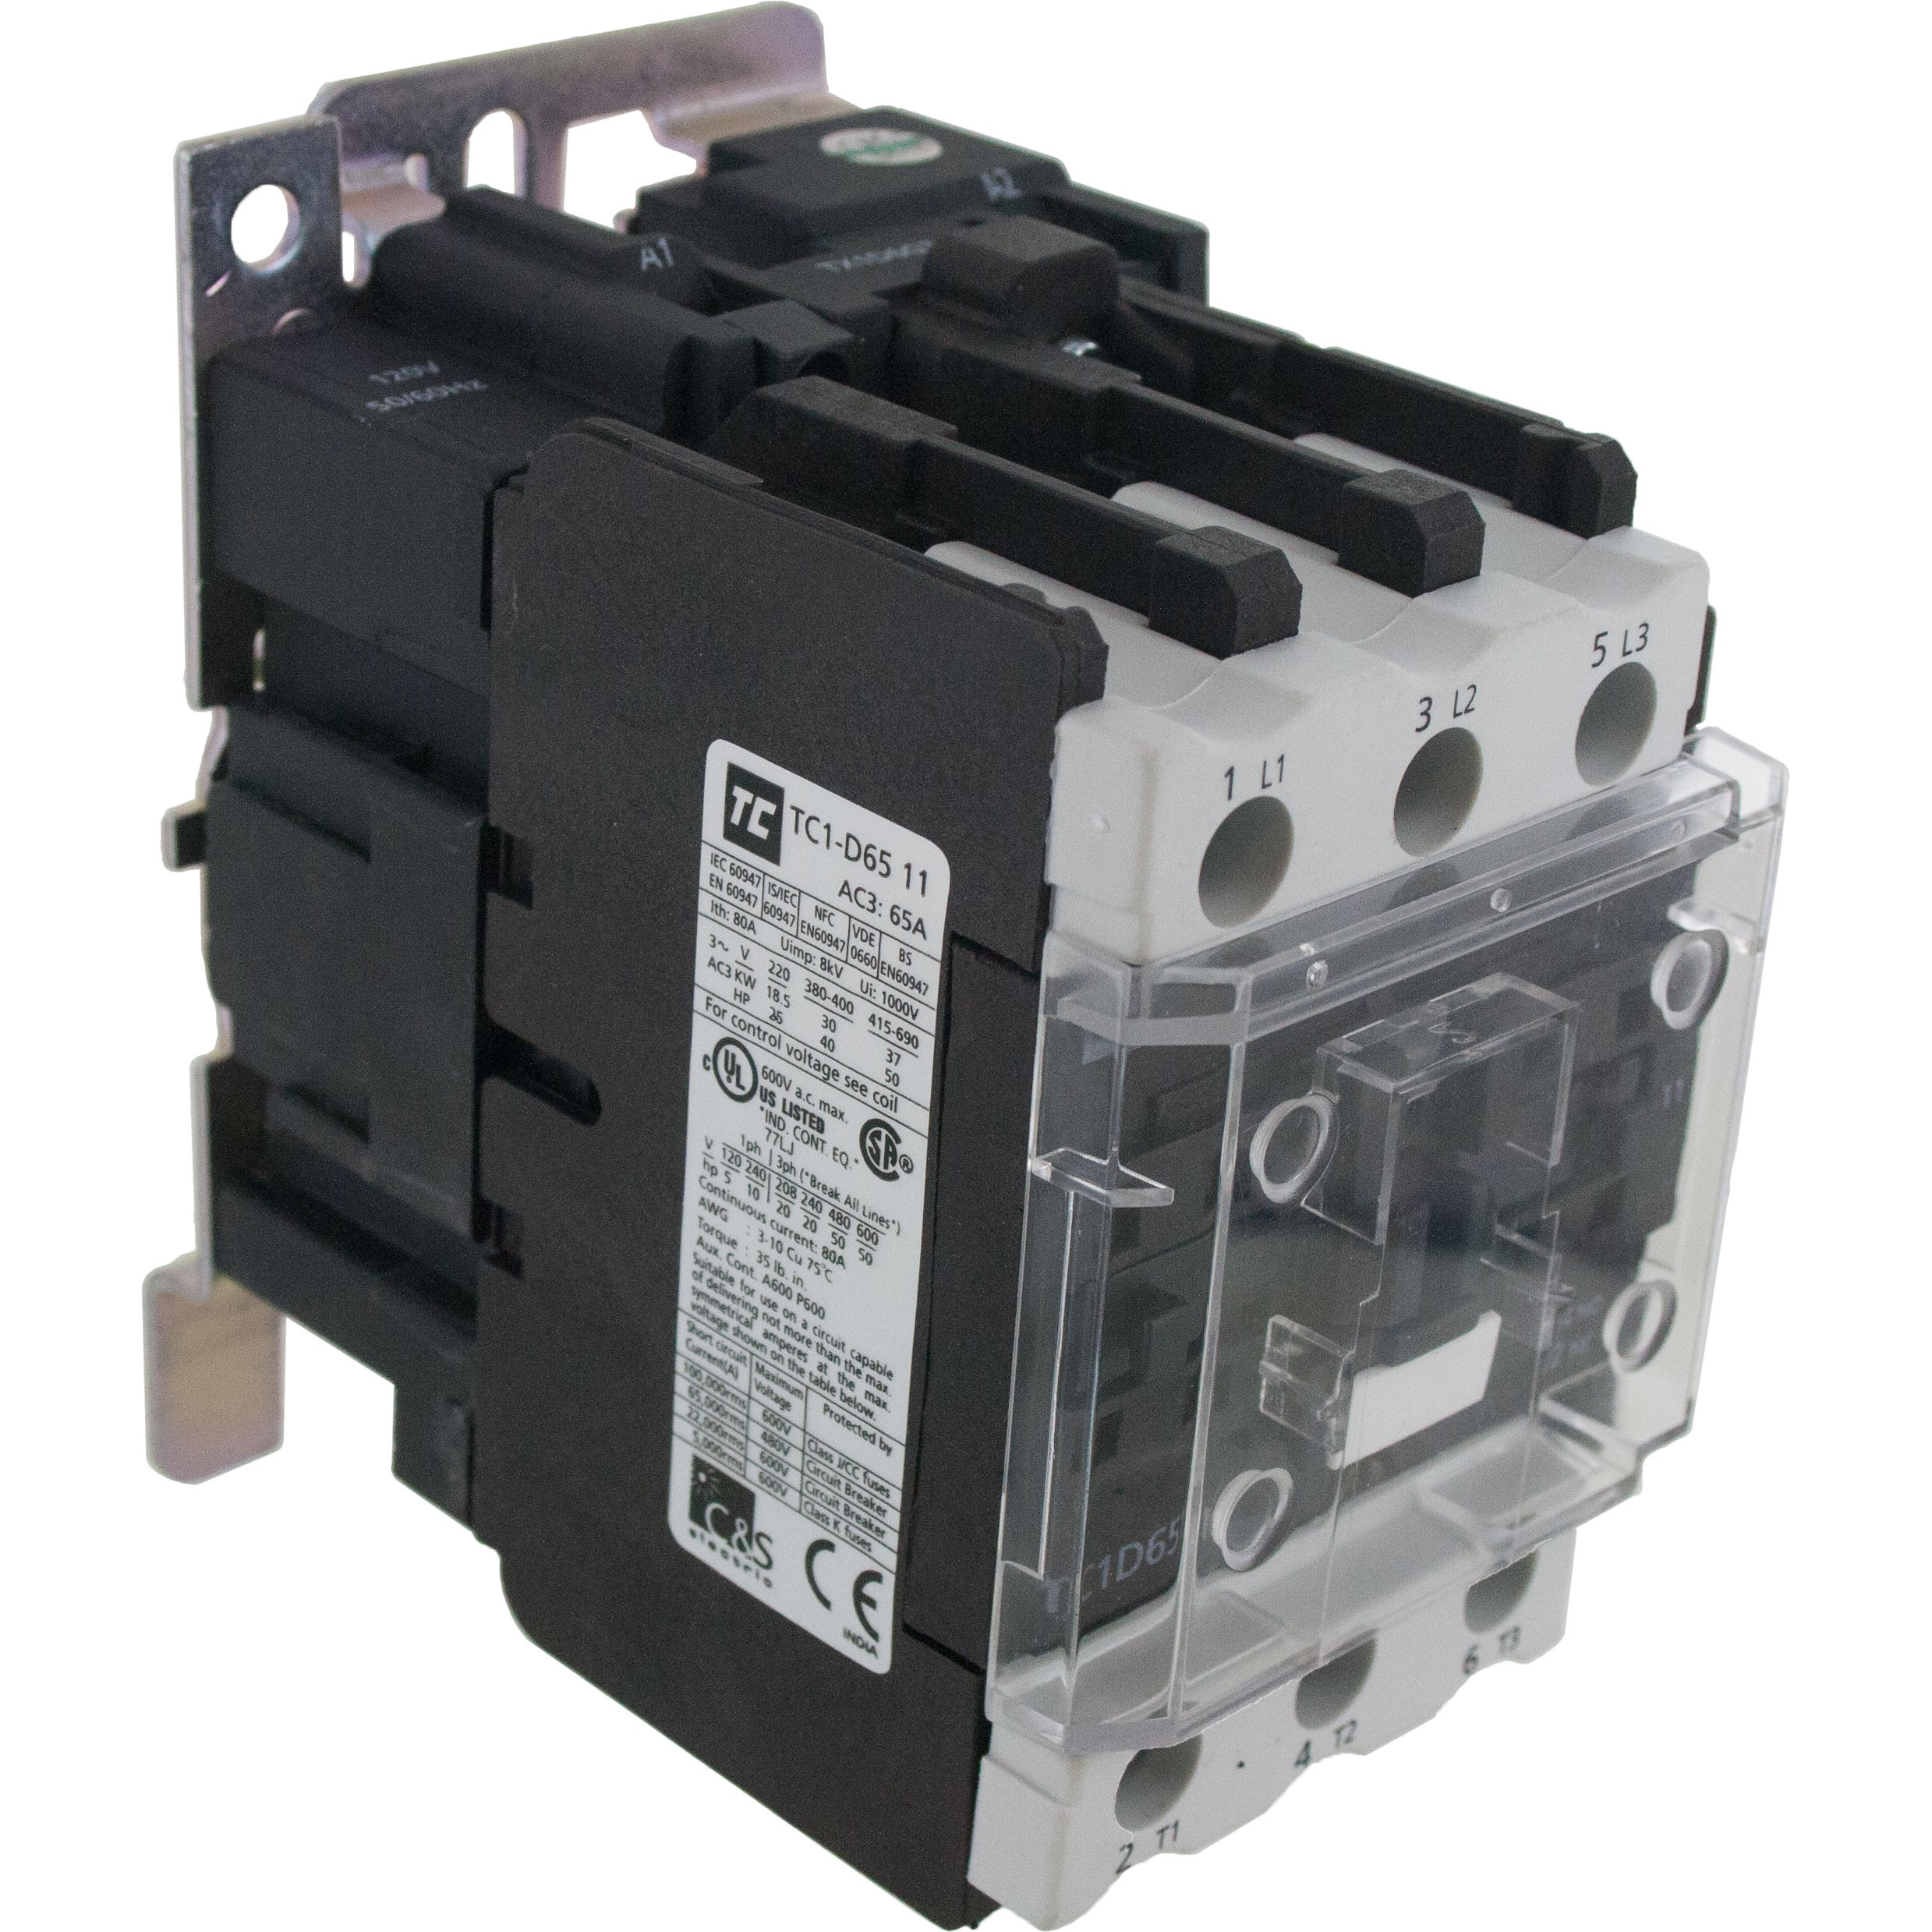 3 Pole Contactor 65 Amp 1 N/O - 1 N/C 220 Volt AC Coil Angle